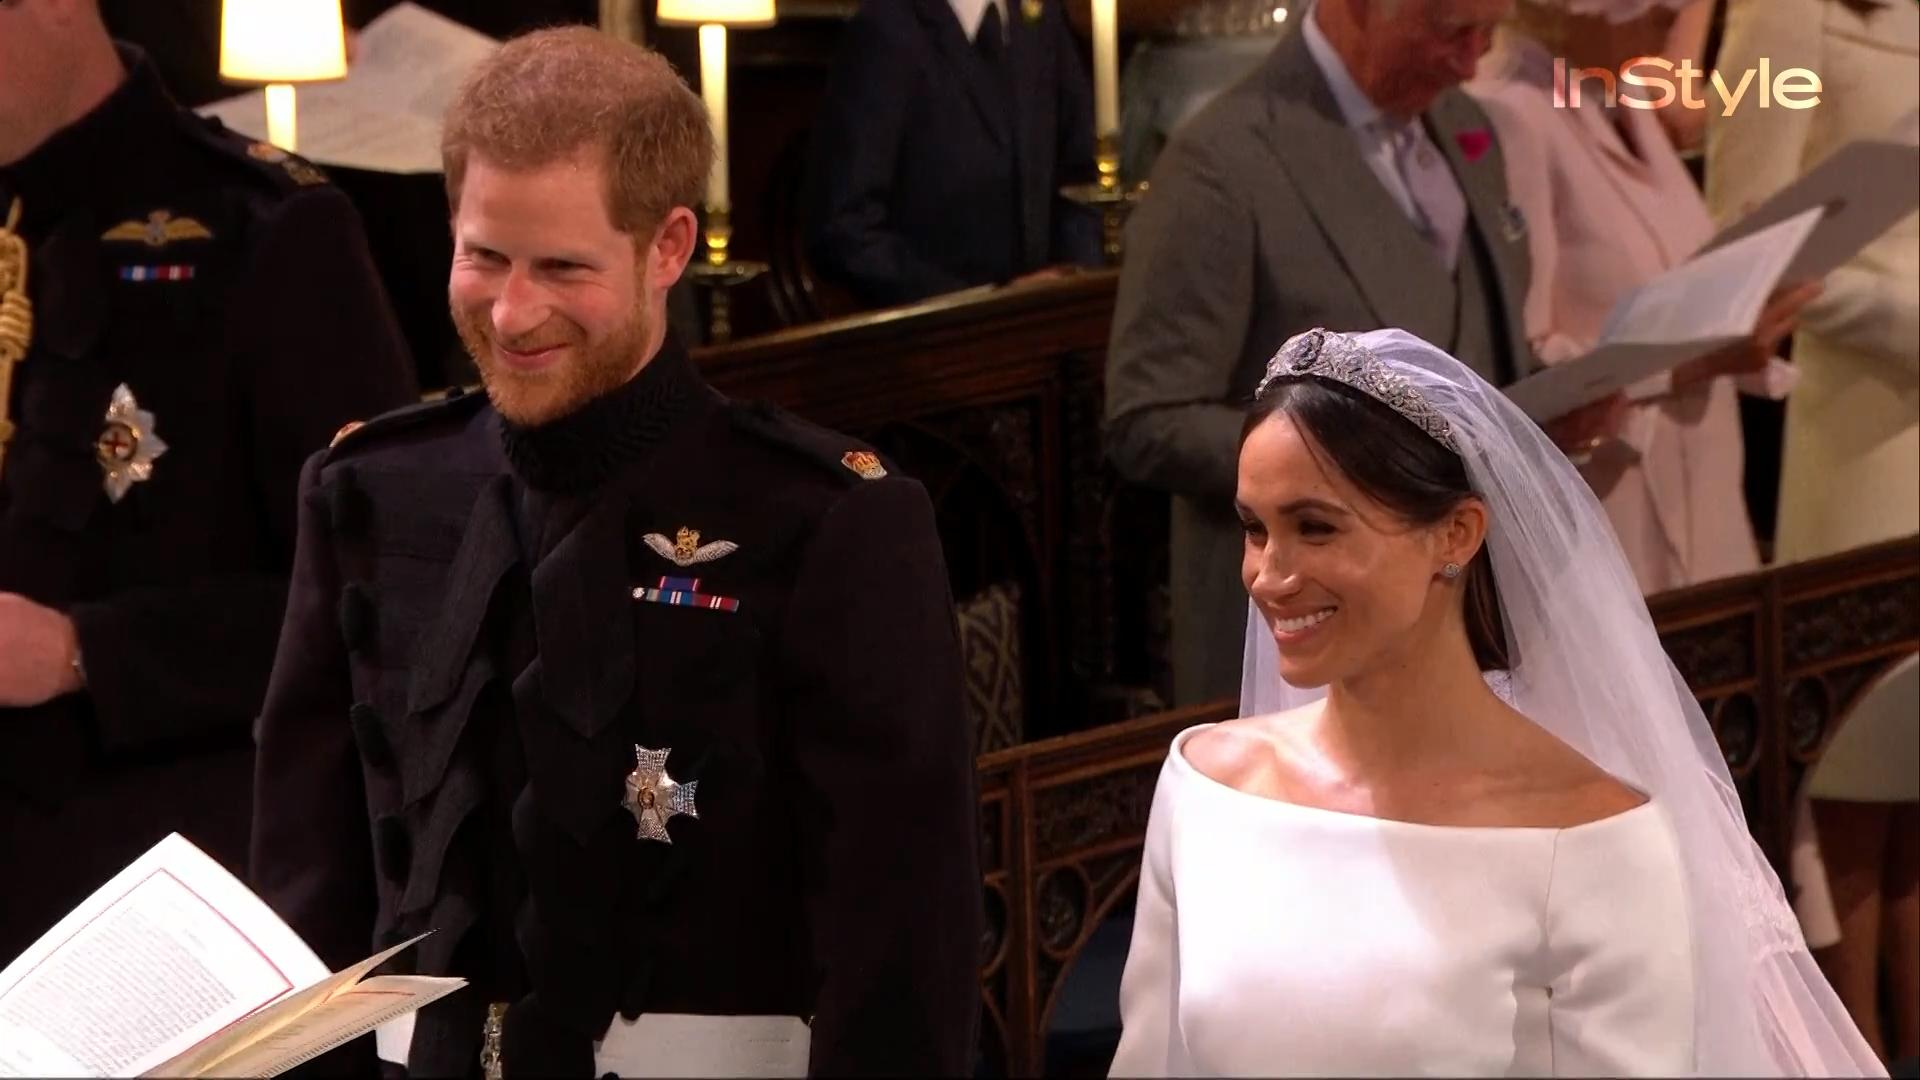 Meghan Markle Set New Royal Beauty Standards With Her Simple Wedding Day Makeup